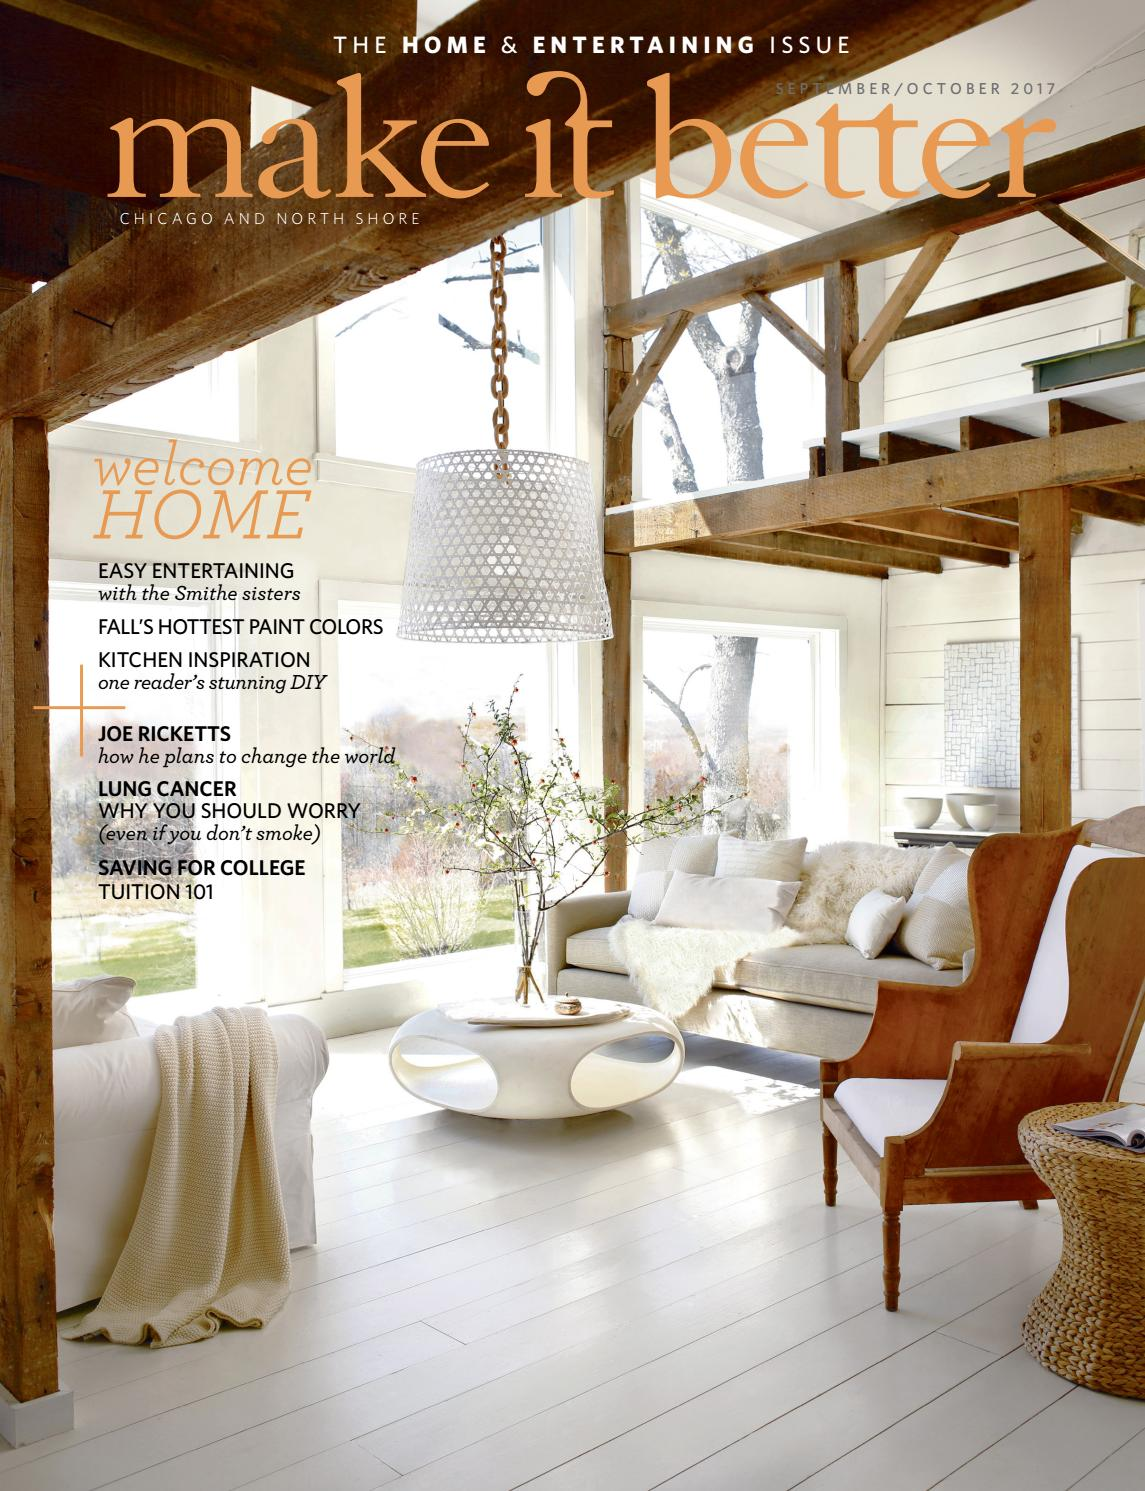 Make it better sept oct 2017 home and entertaining issue by make it better issuu